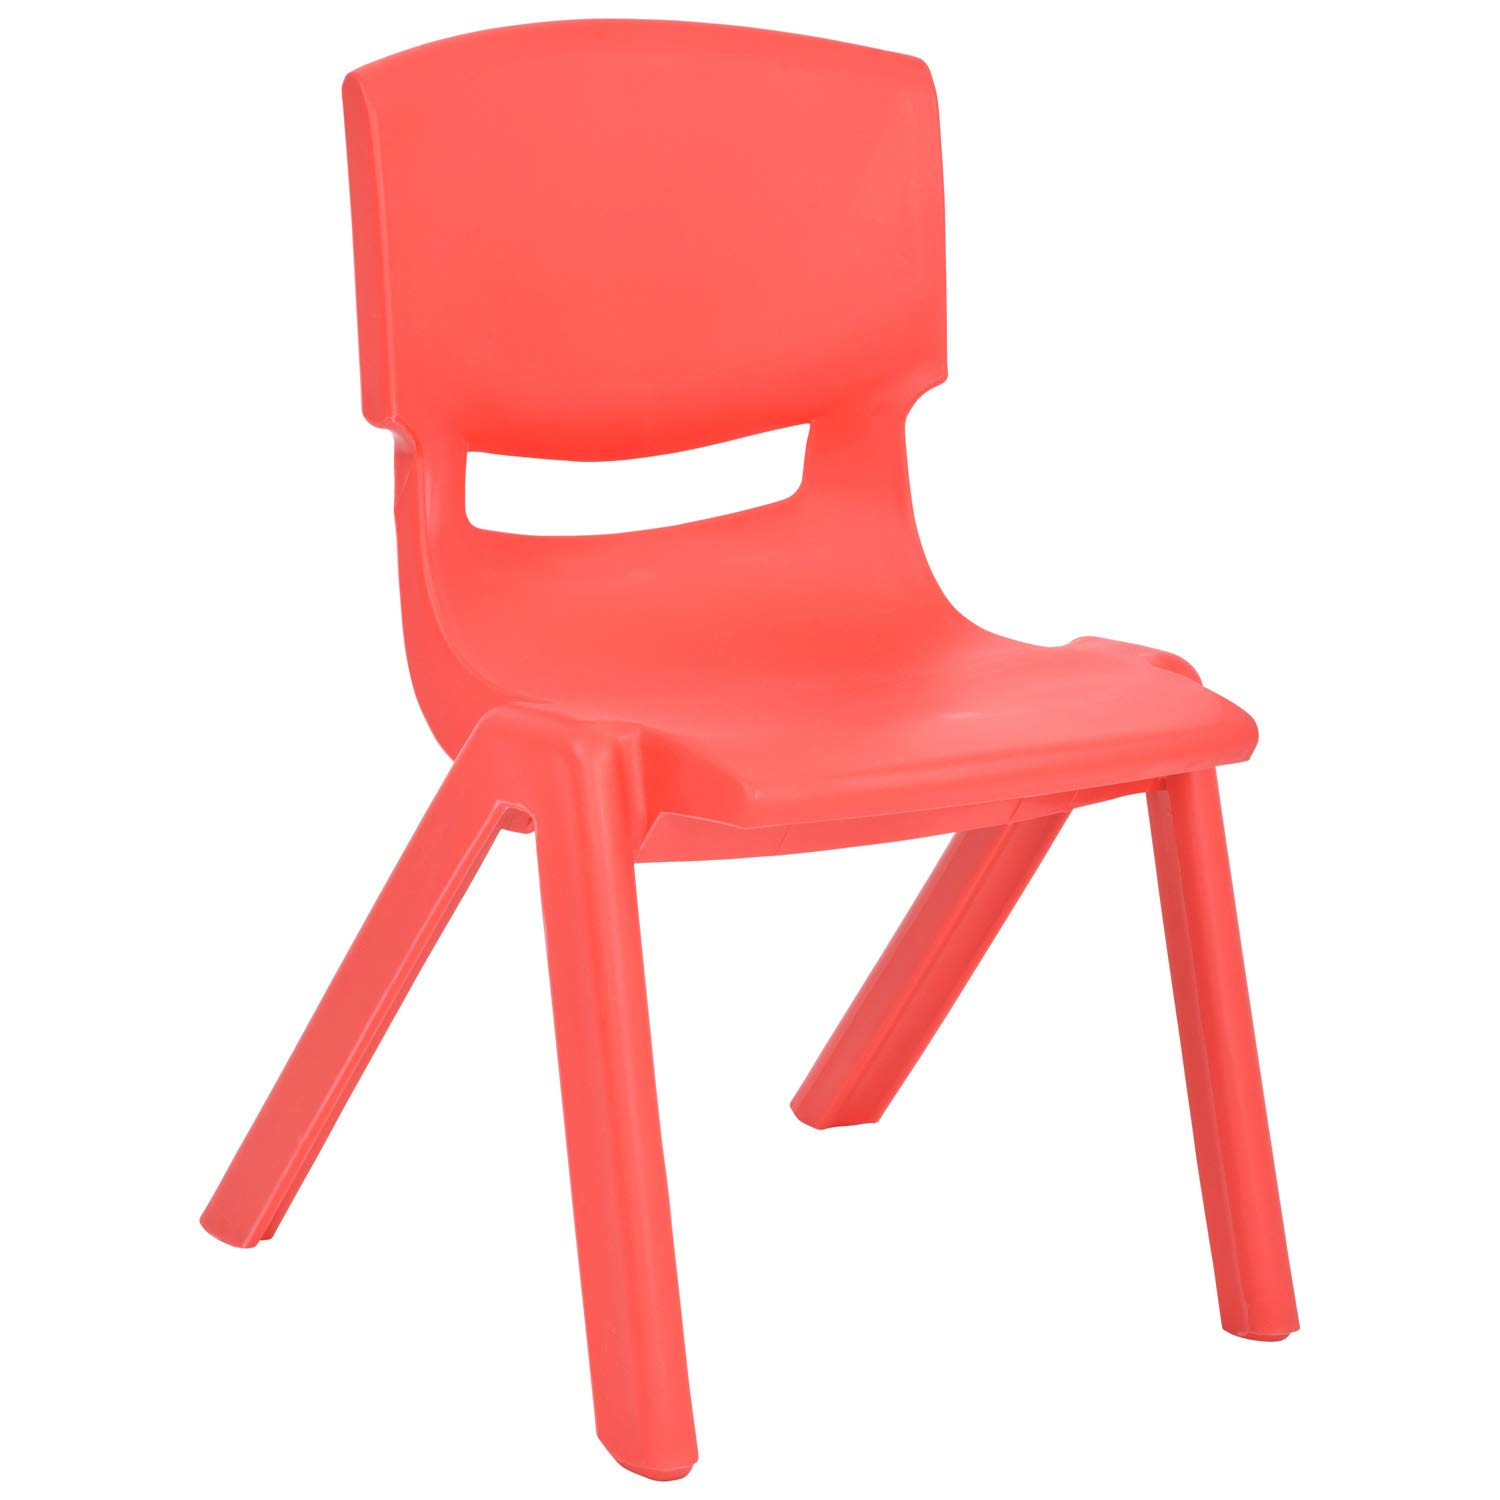 JOON Stackable Plastic Kids Learning Chairs, 20.8x12.5 Inches, The Perfect Chair for Playrooms, Schools, Daycares and Home (Red)